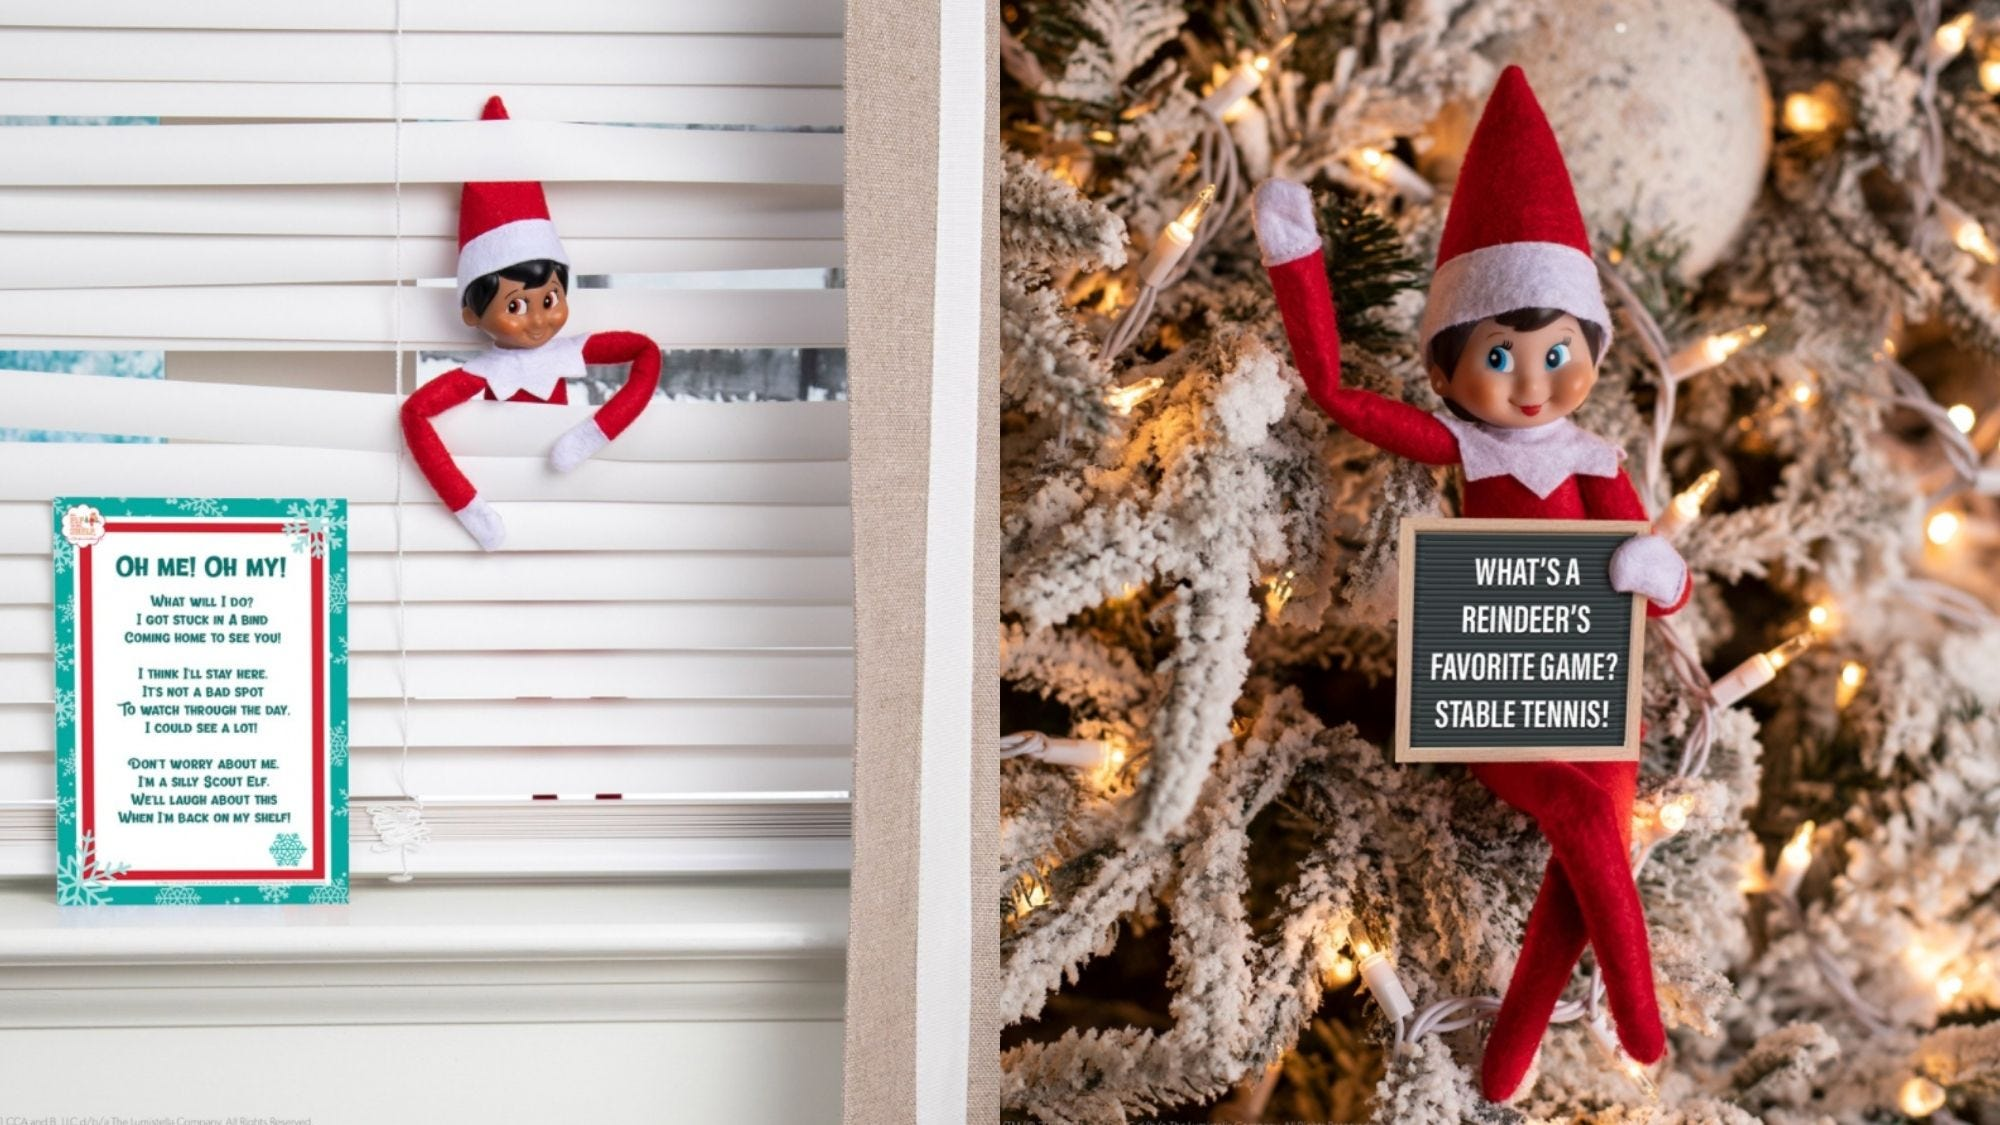 To get the fun started, get yourself an elf!